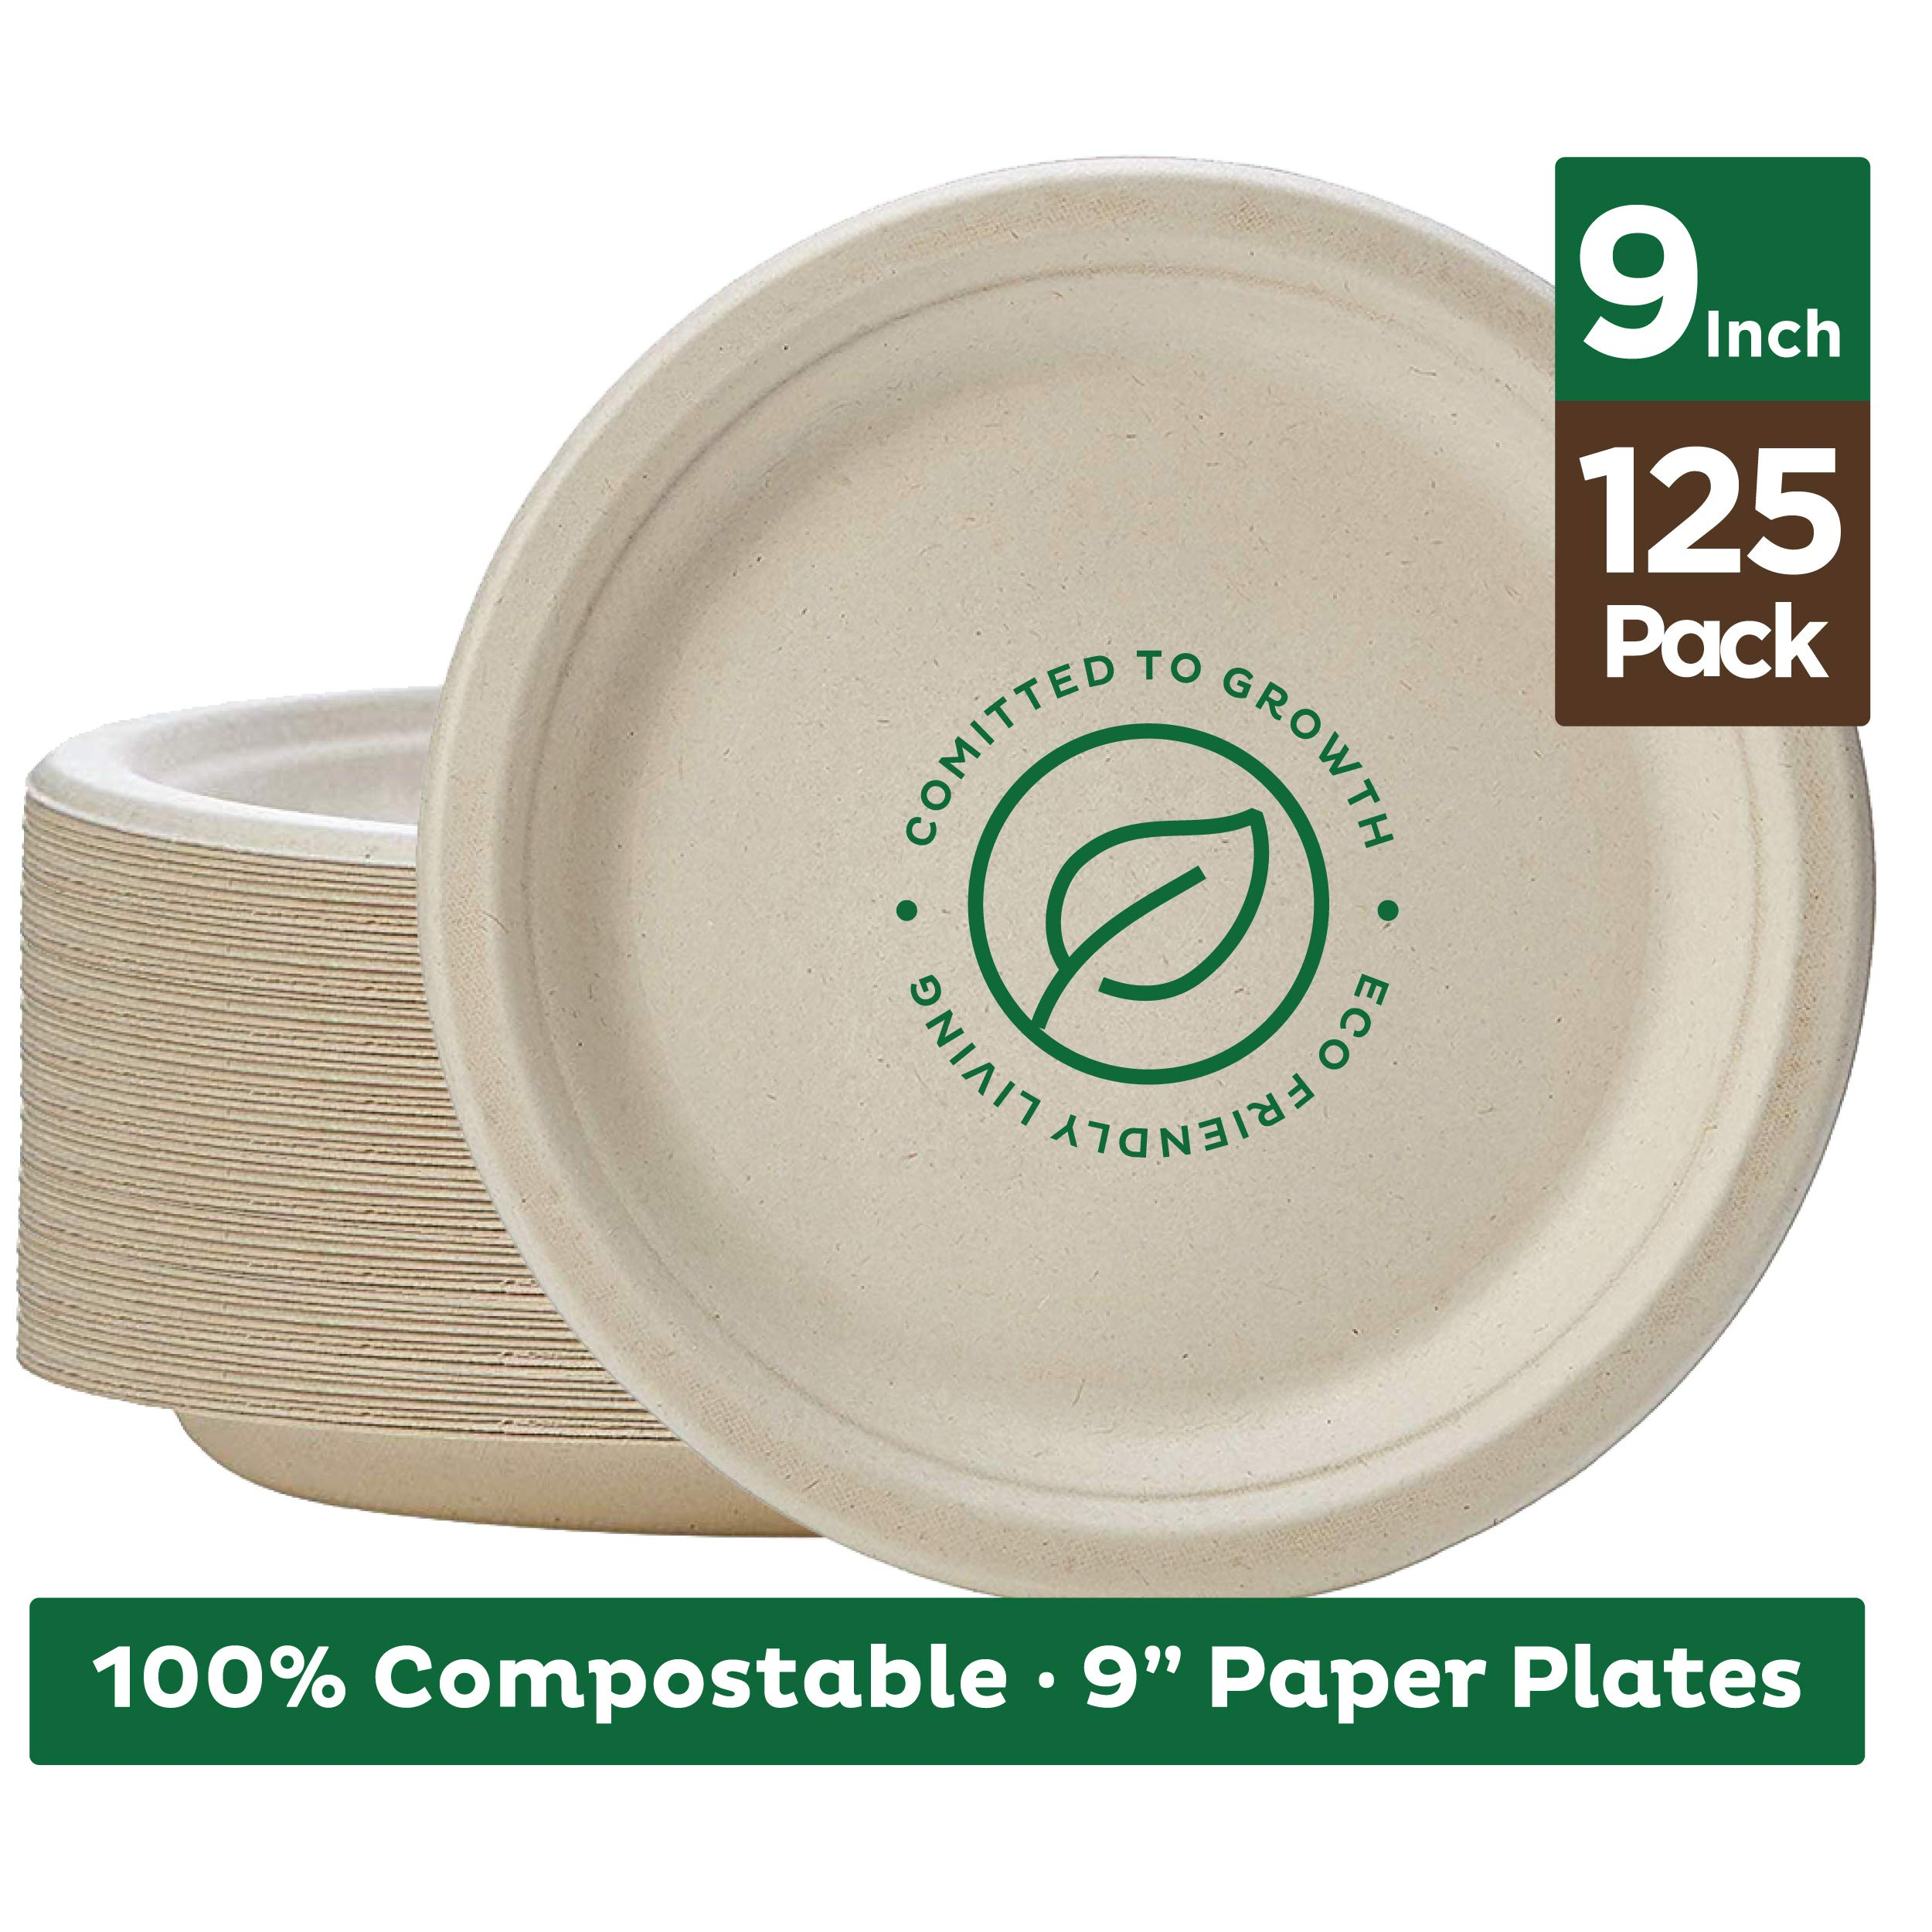 Stack Man 100% Compostable 9'' Paper Plates [125-Pack] Heavy-Duty Quality Natural Disposable Bagasse, Eco-Friendly Made of Sugar Cane Fibers, 9 inch, Brown